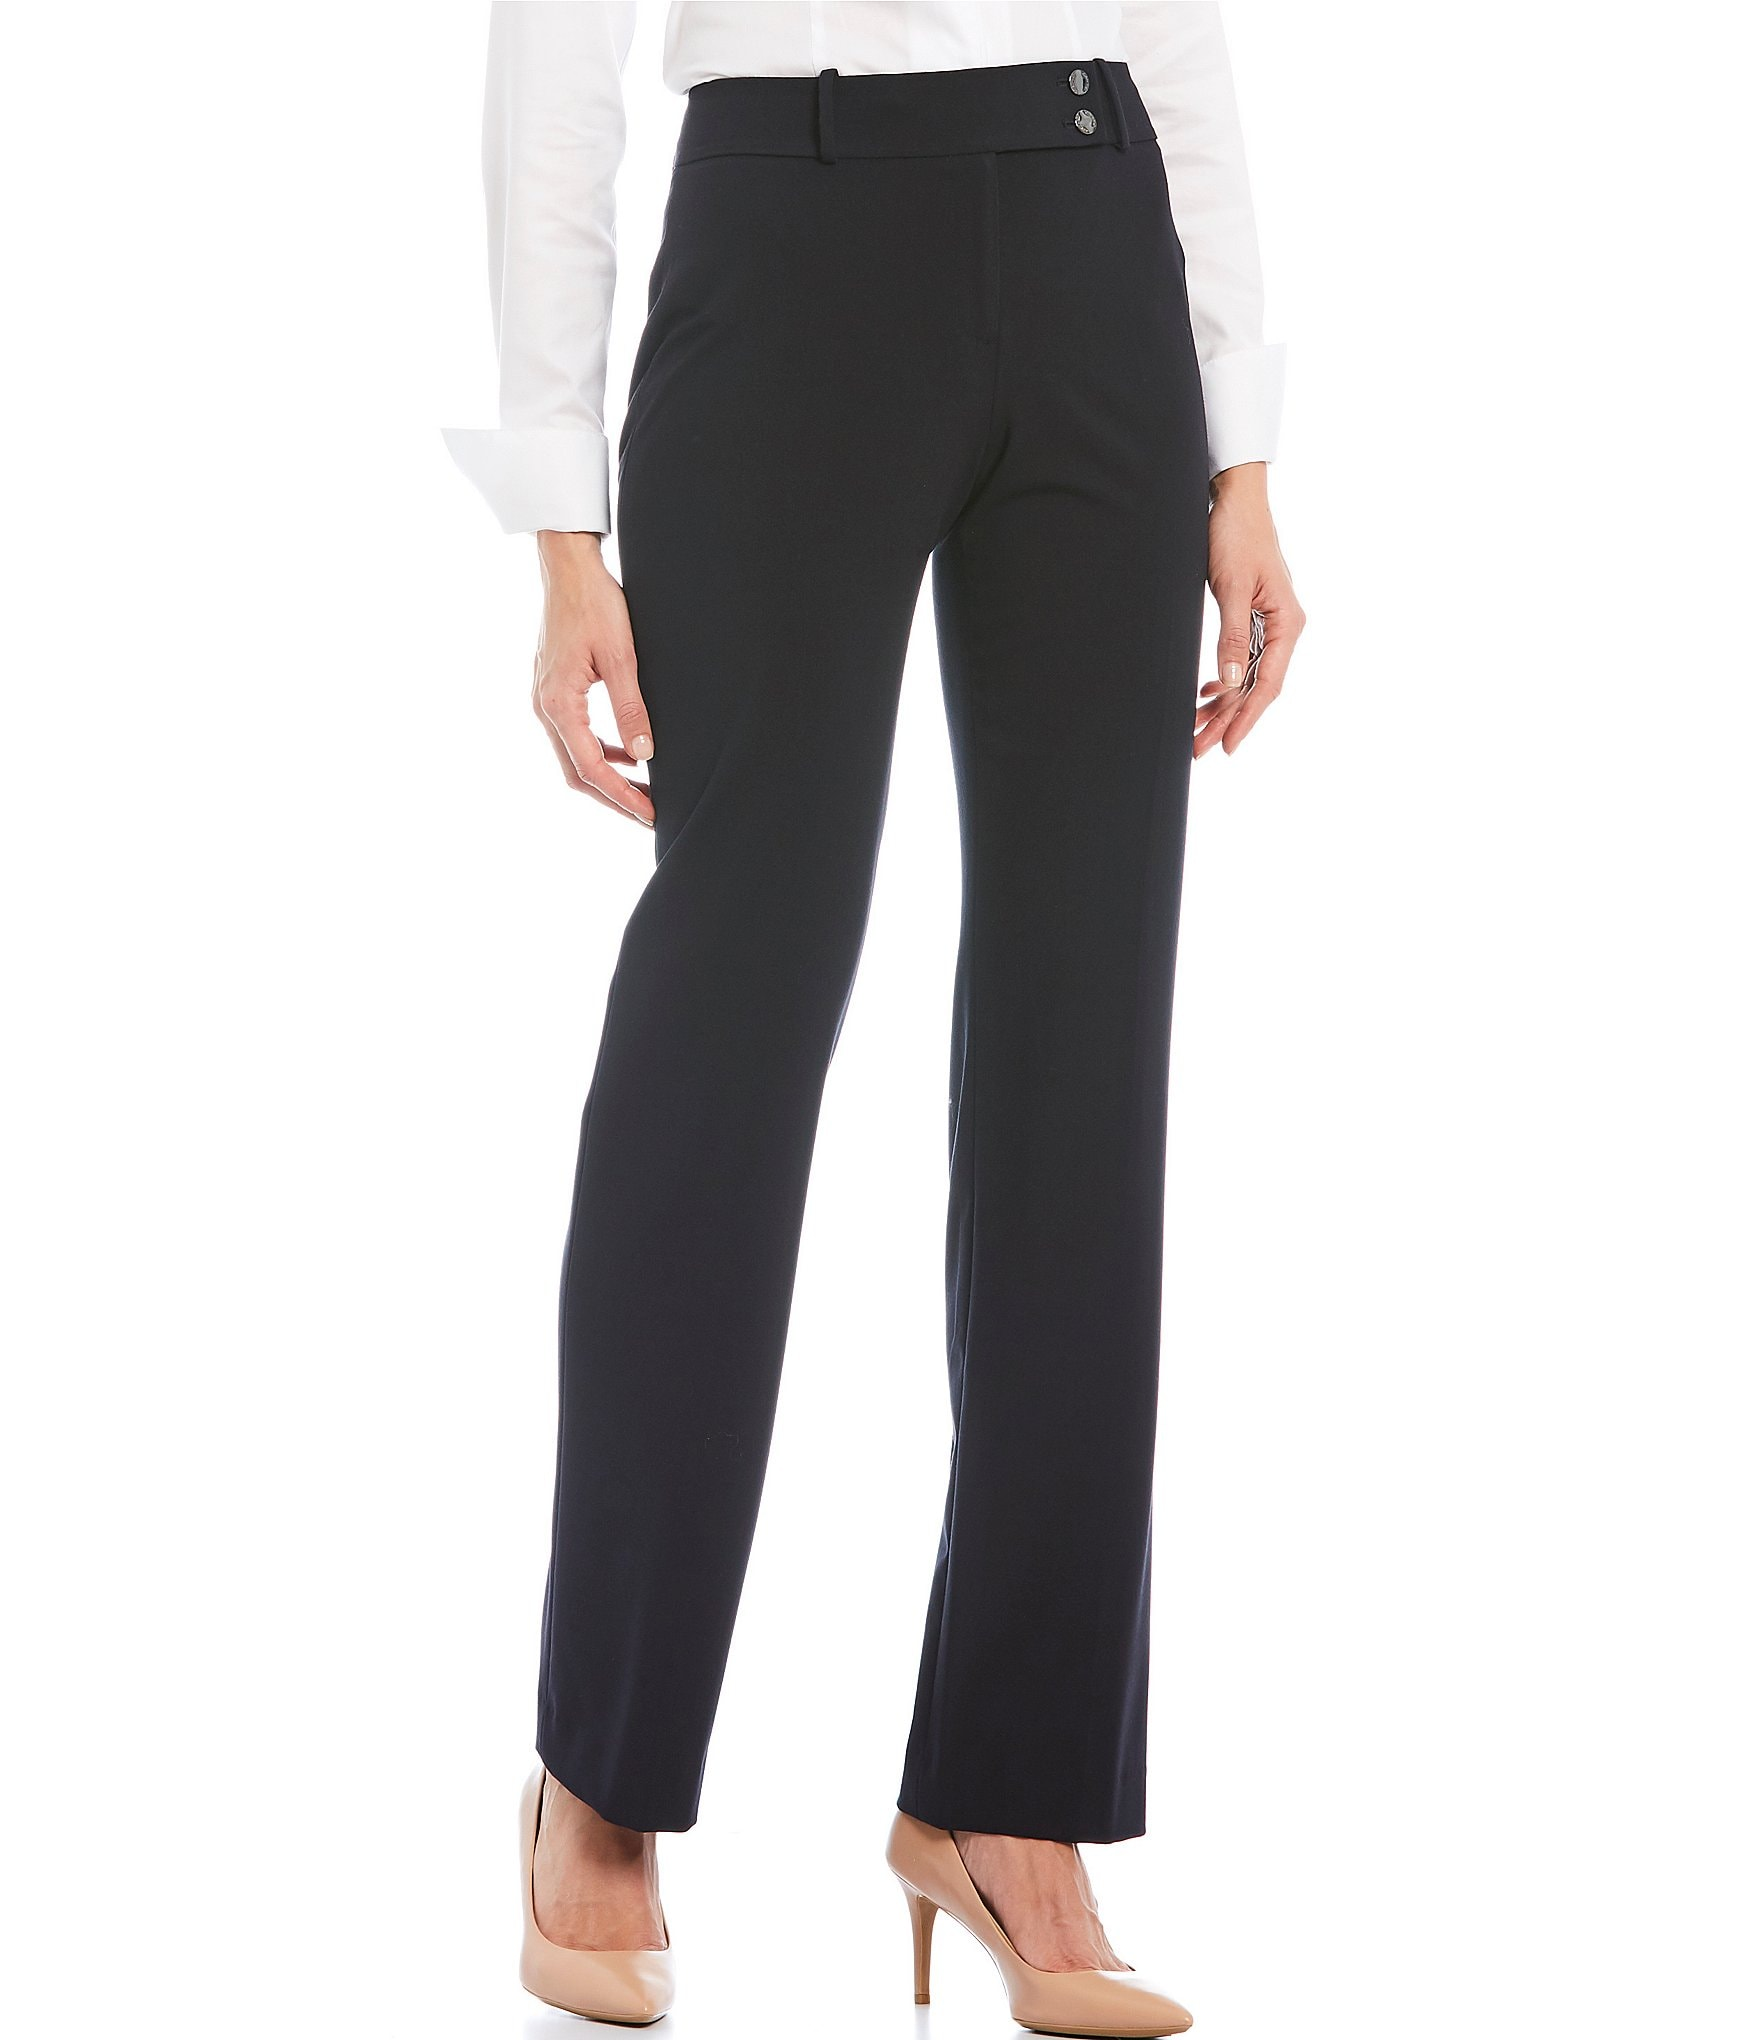 f5674f0c794 Calvin Klein Women s Casual   Dress Pants